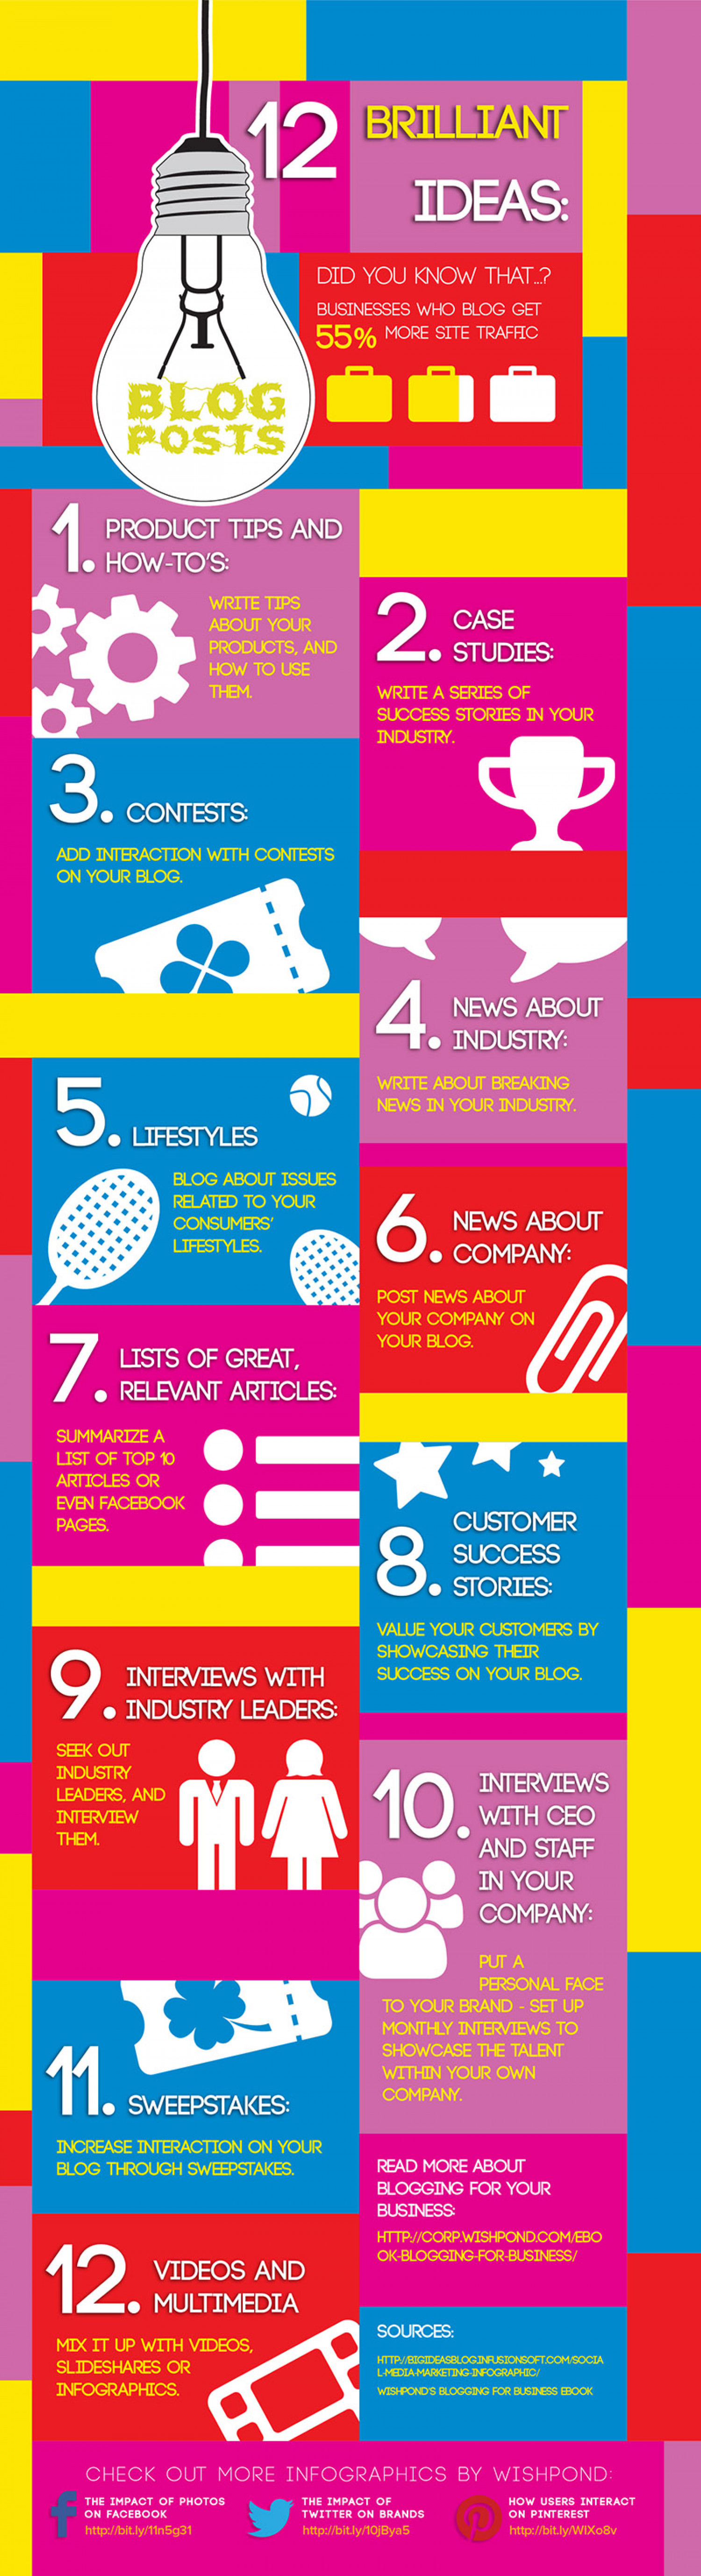 12 Brilliant Blog Post Ideas for Businesses Infographic